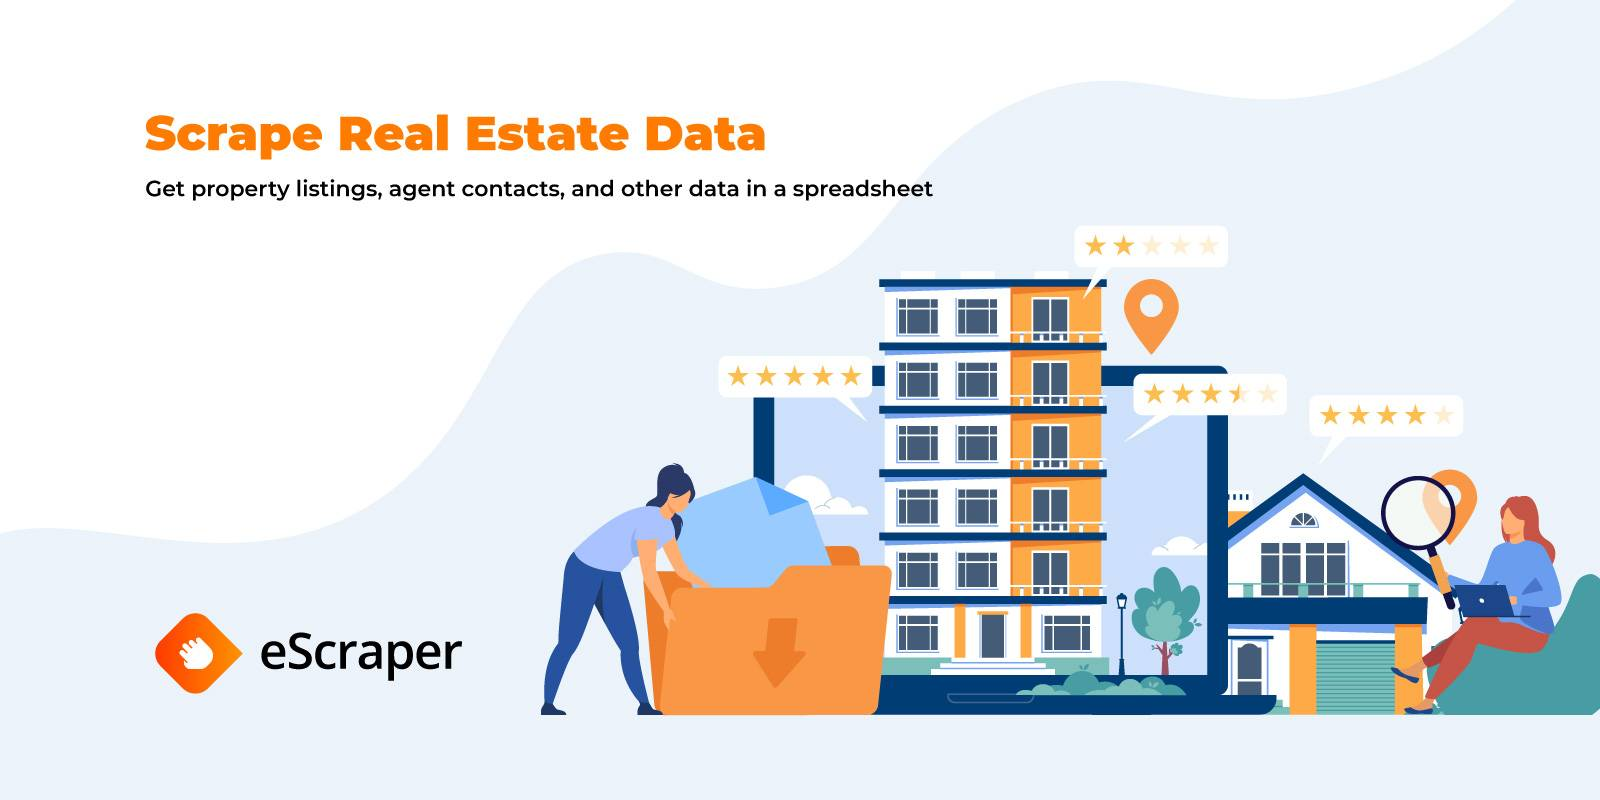 How to scrape data from a real estate web site